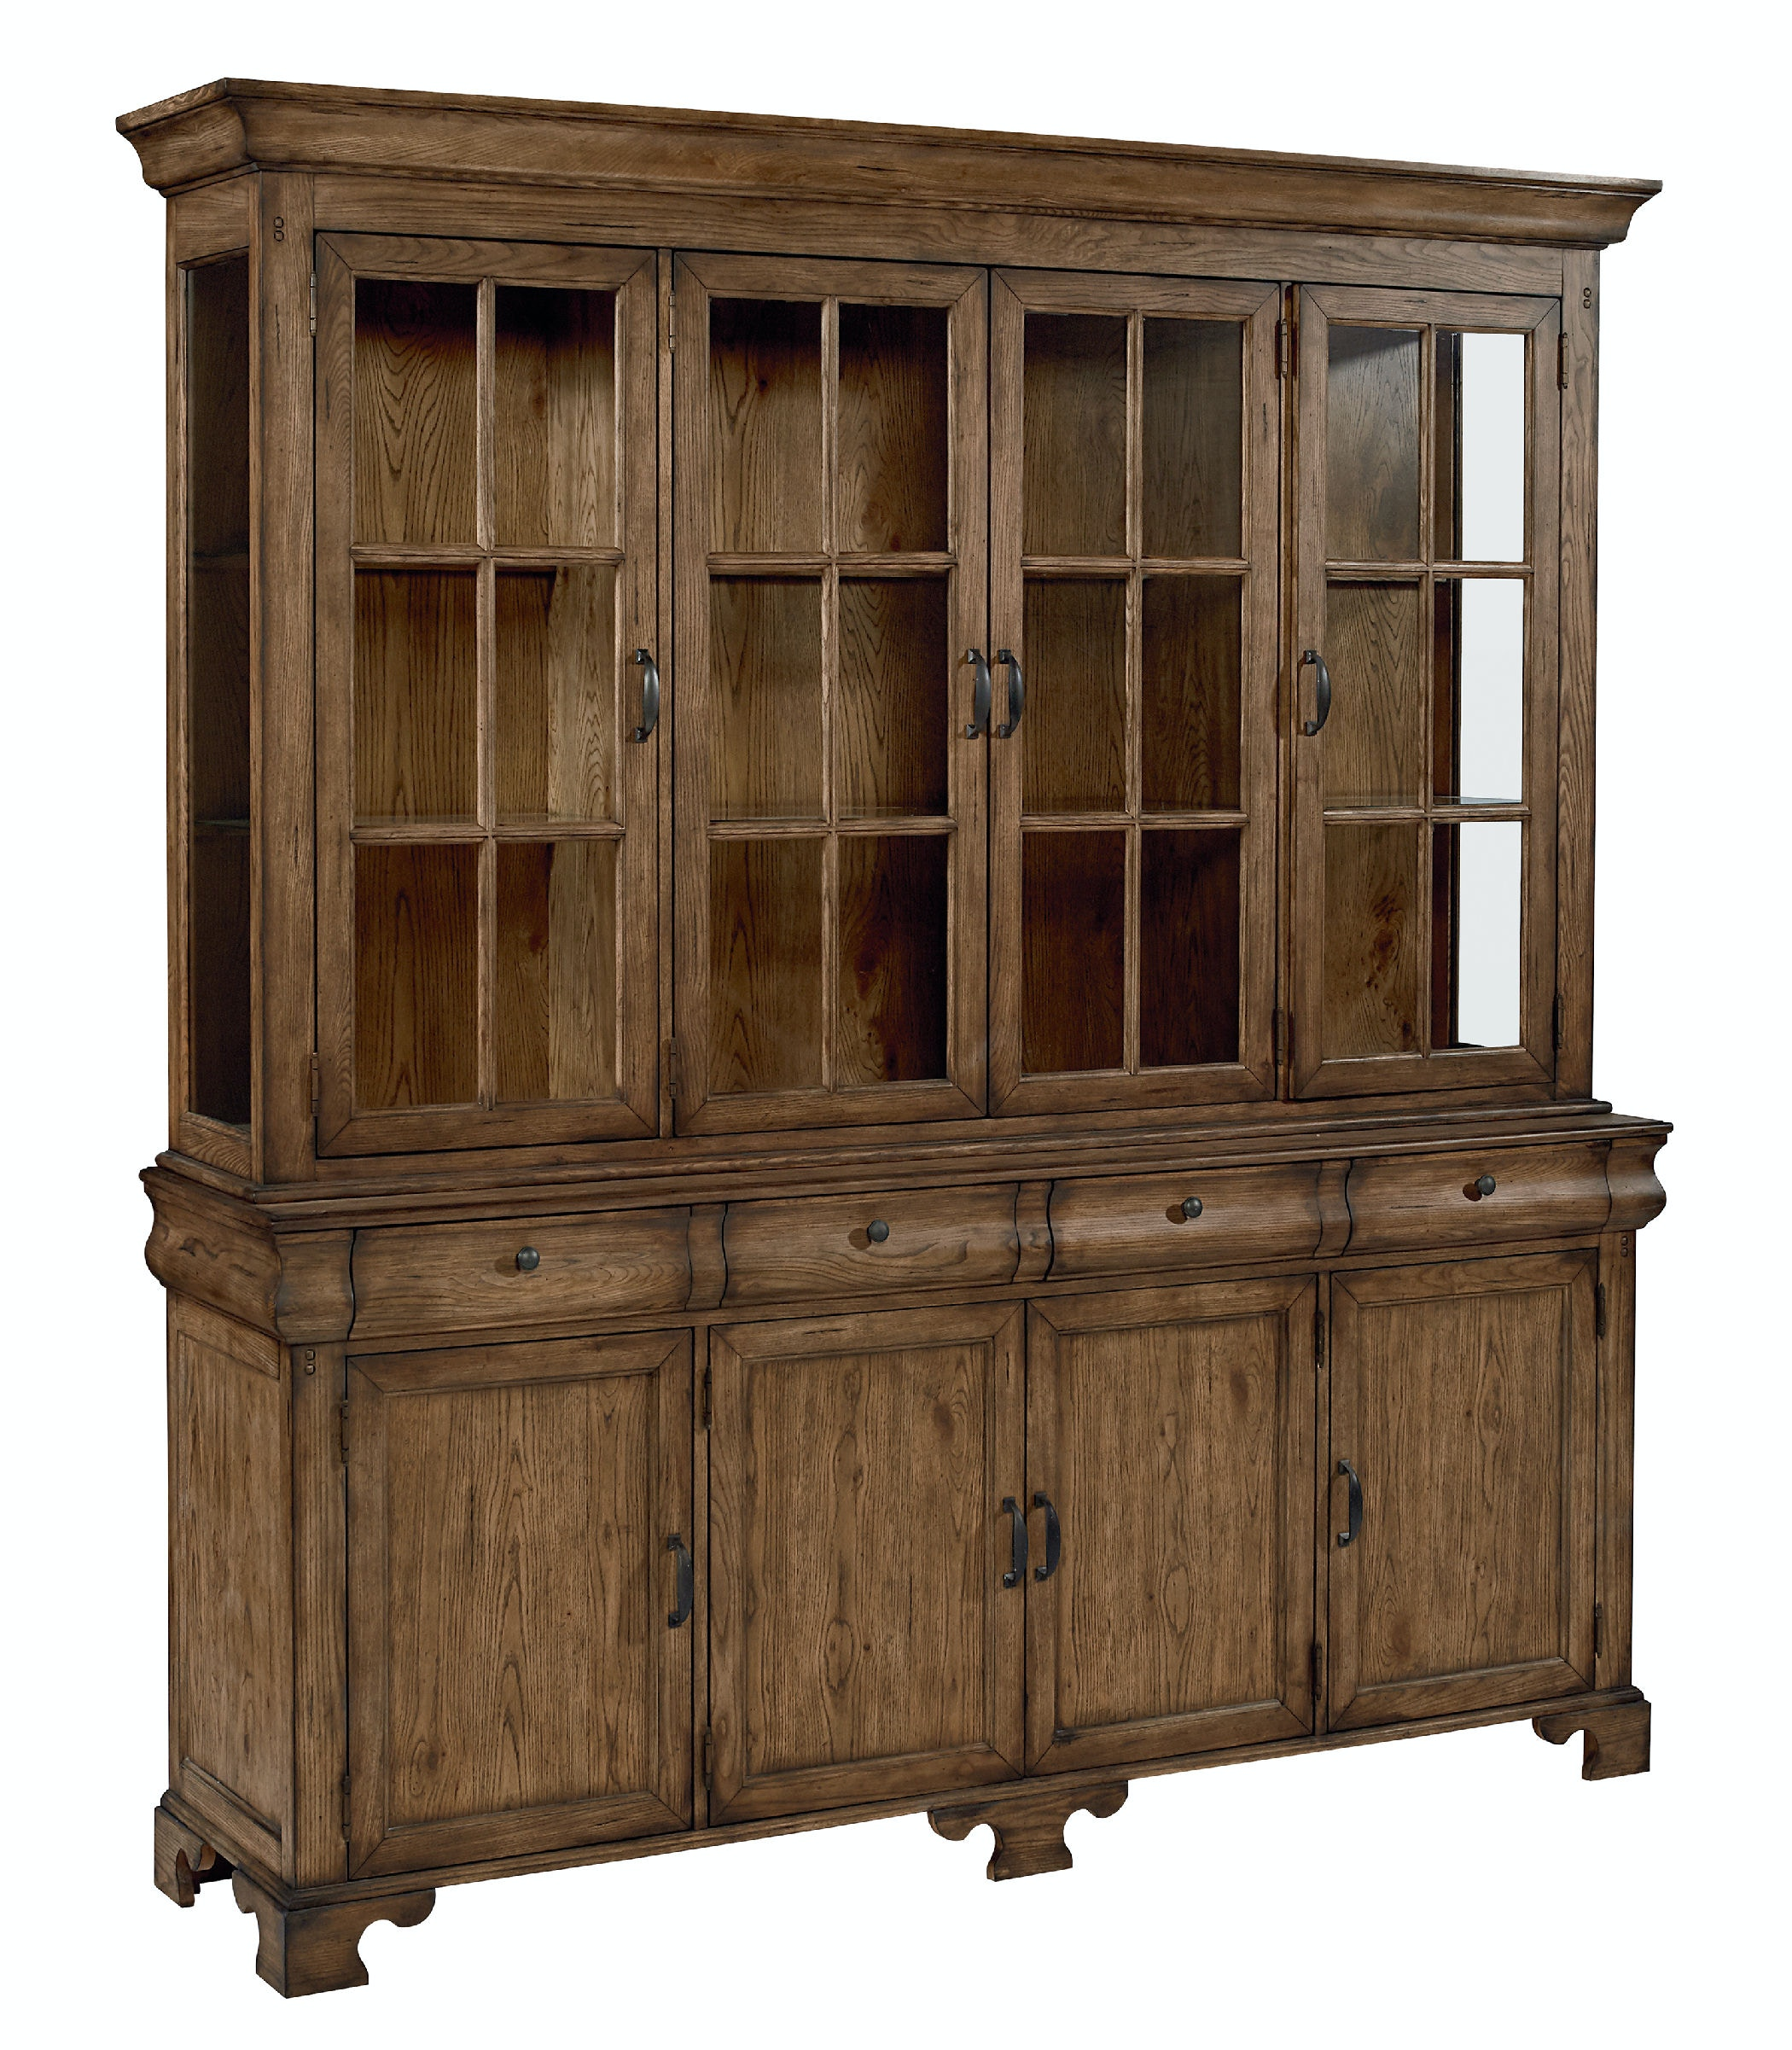 Magnolia Home   Showcase Buffet And Hutch KT:50591